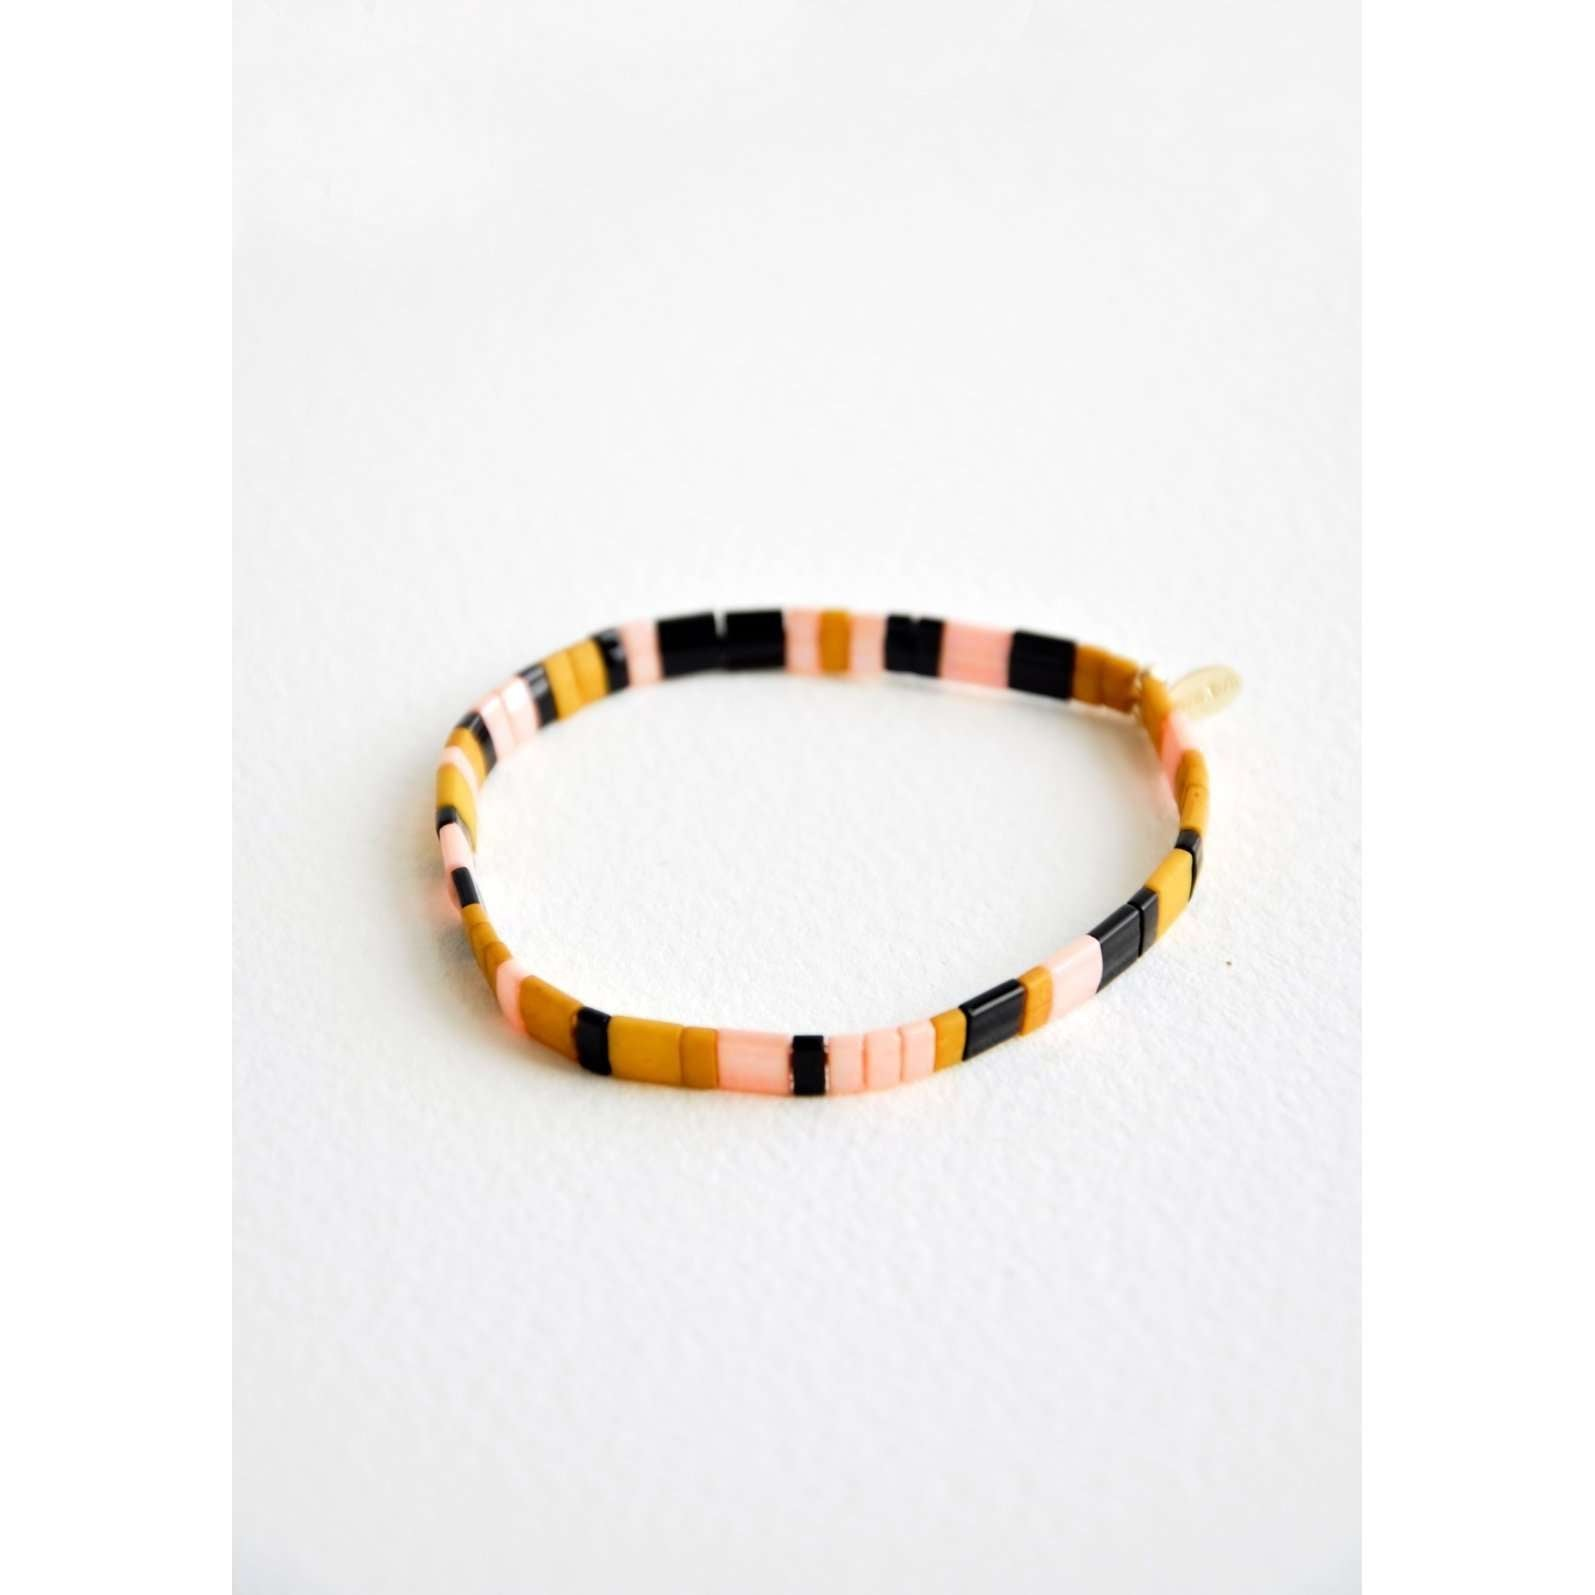 tilu-bracelet-the-olsensbracelets-jewelry